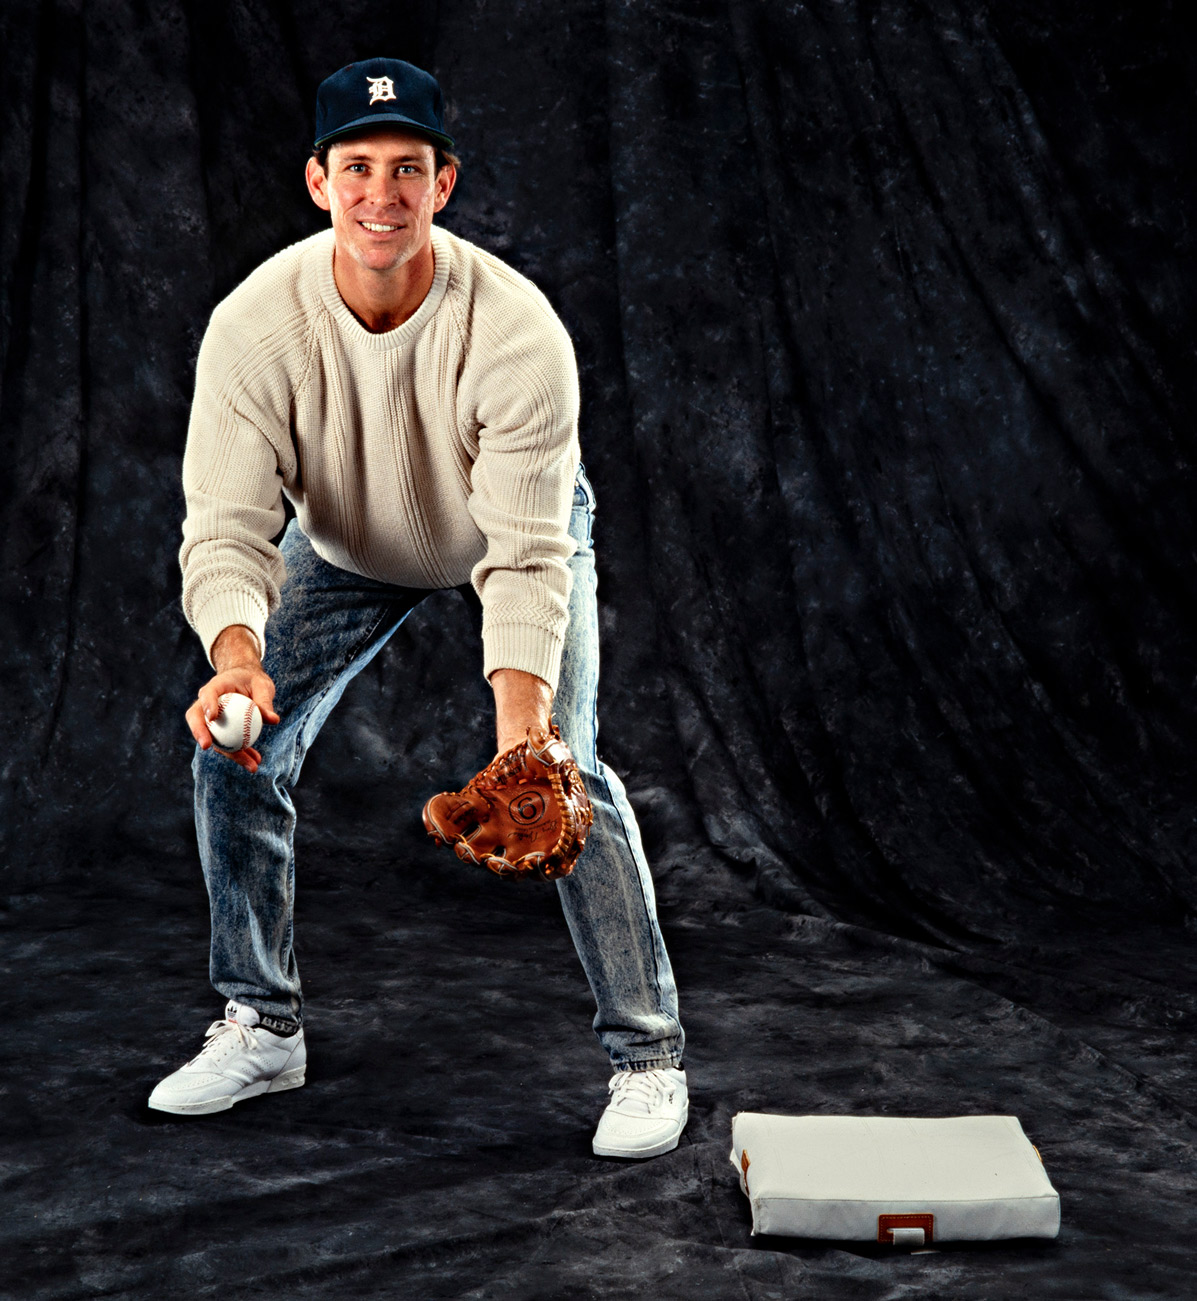 Alan Trammell: Hall of Fame Detroit Tigers